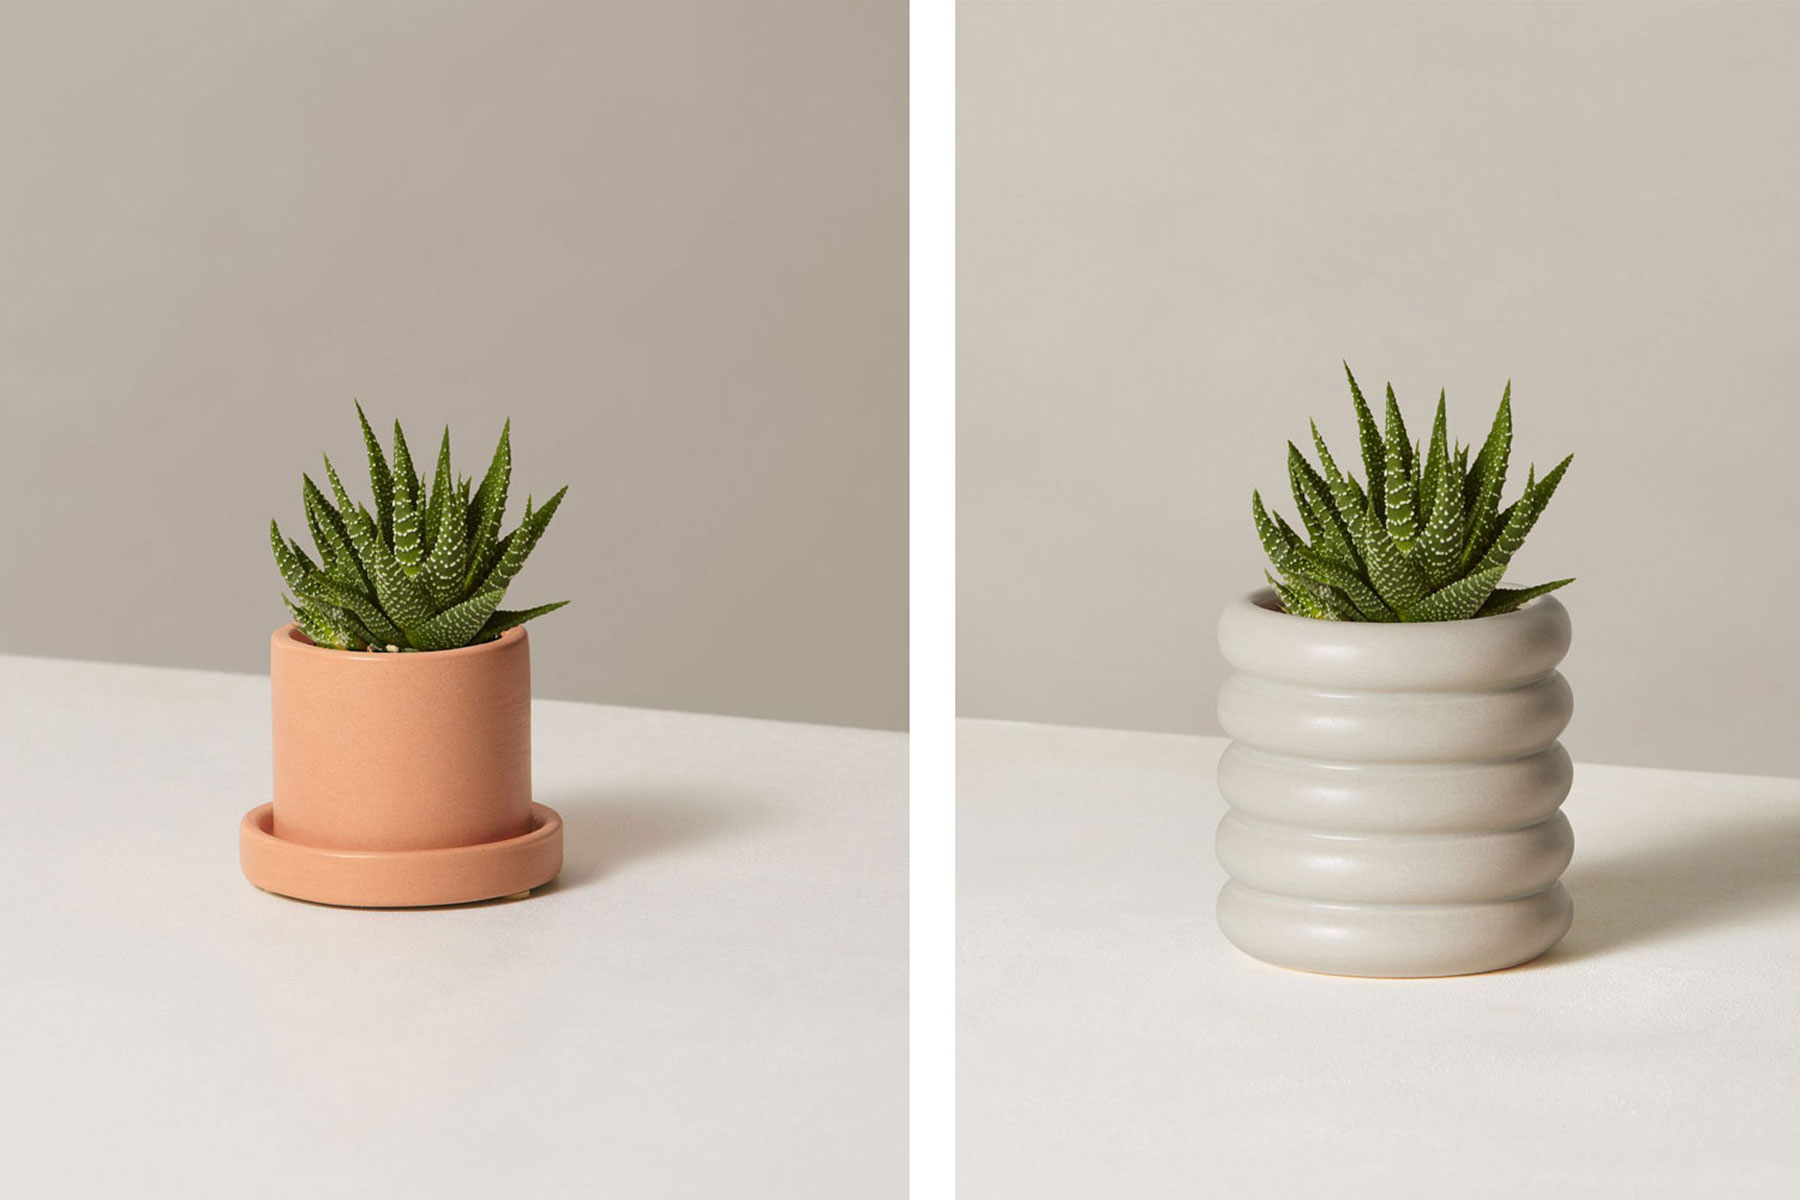 Two succulents in ceramic pots